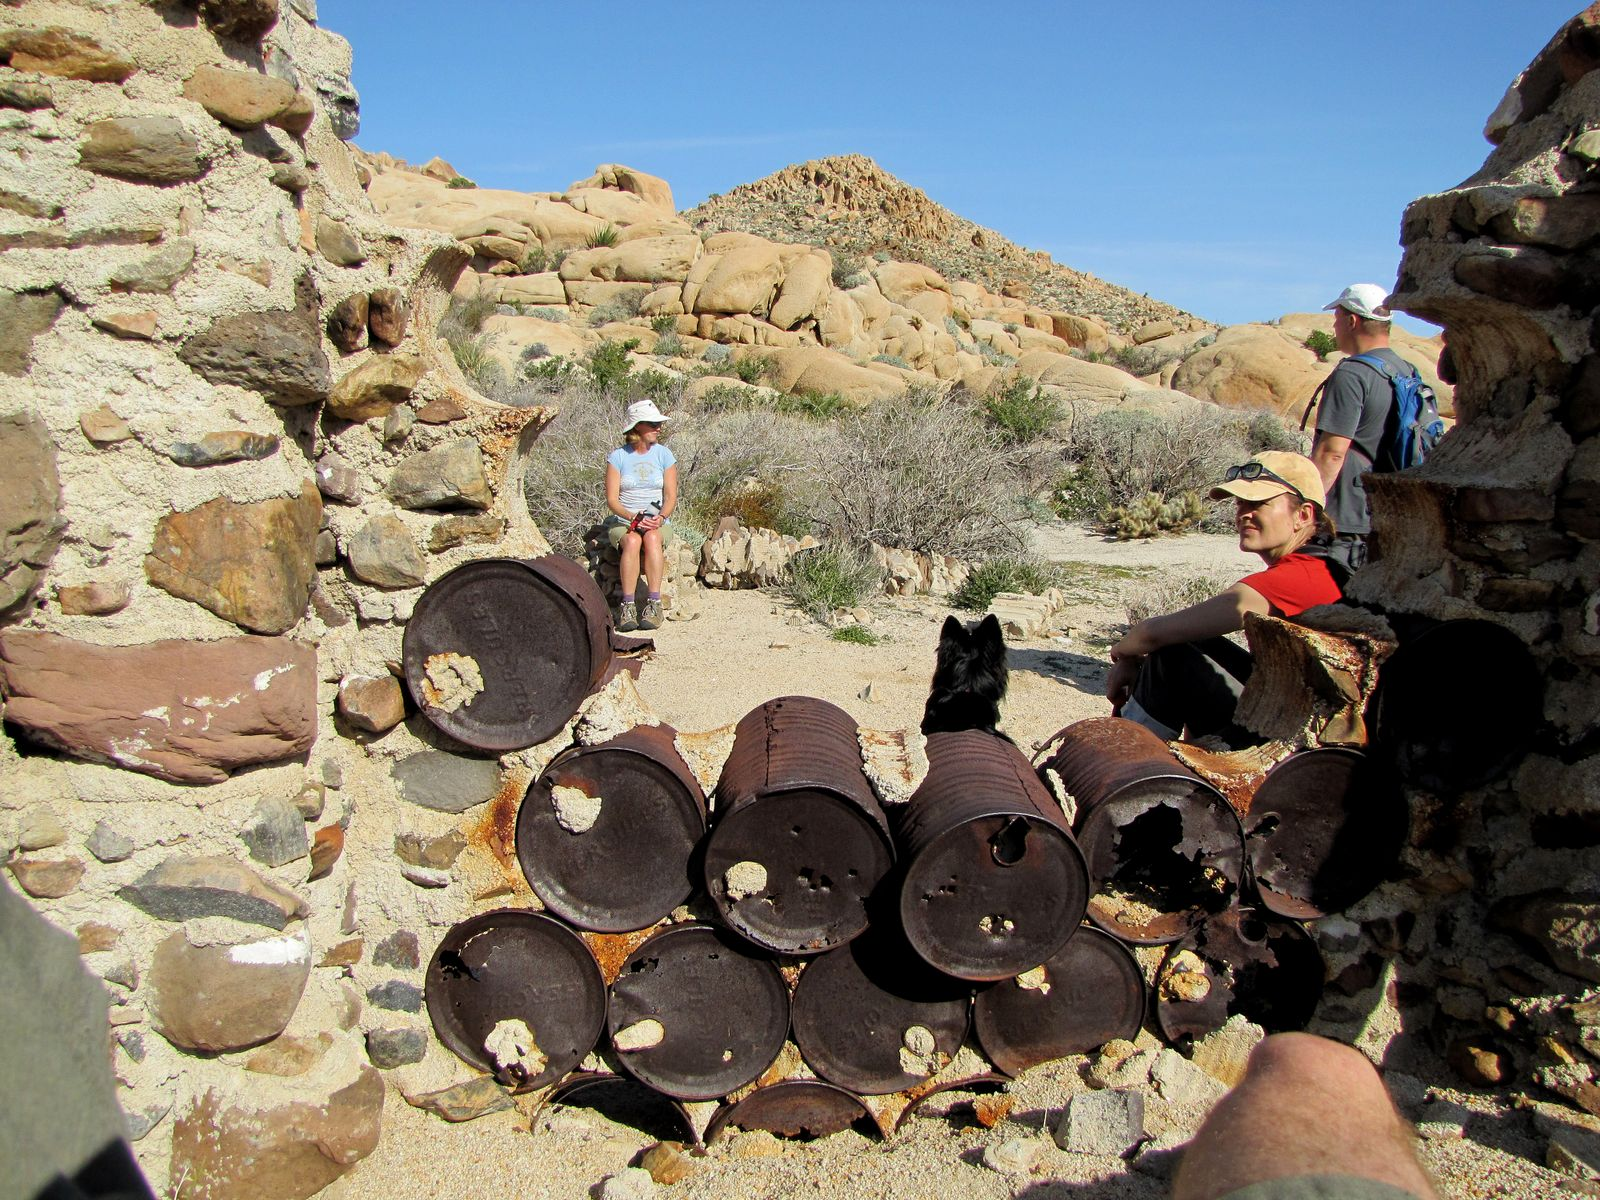 Ingenuity. The railroad camp was built using the old blasting powder cans stuck together with mortar